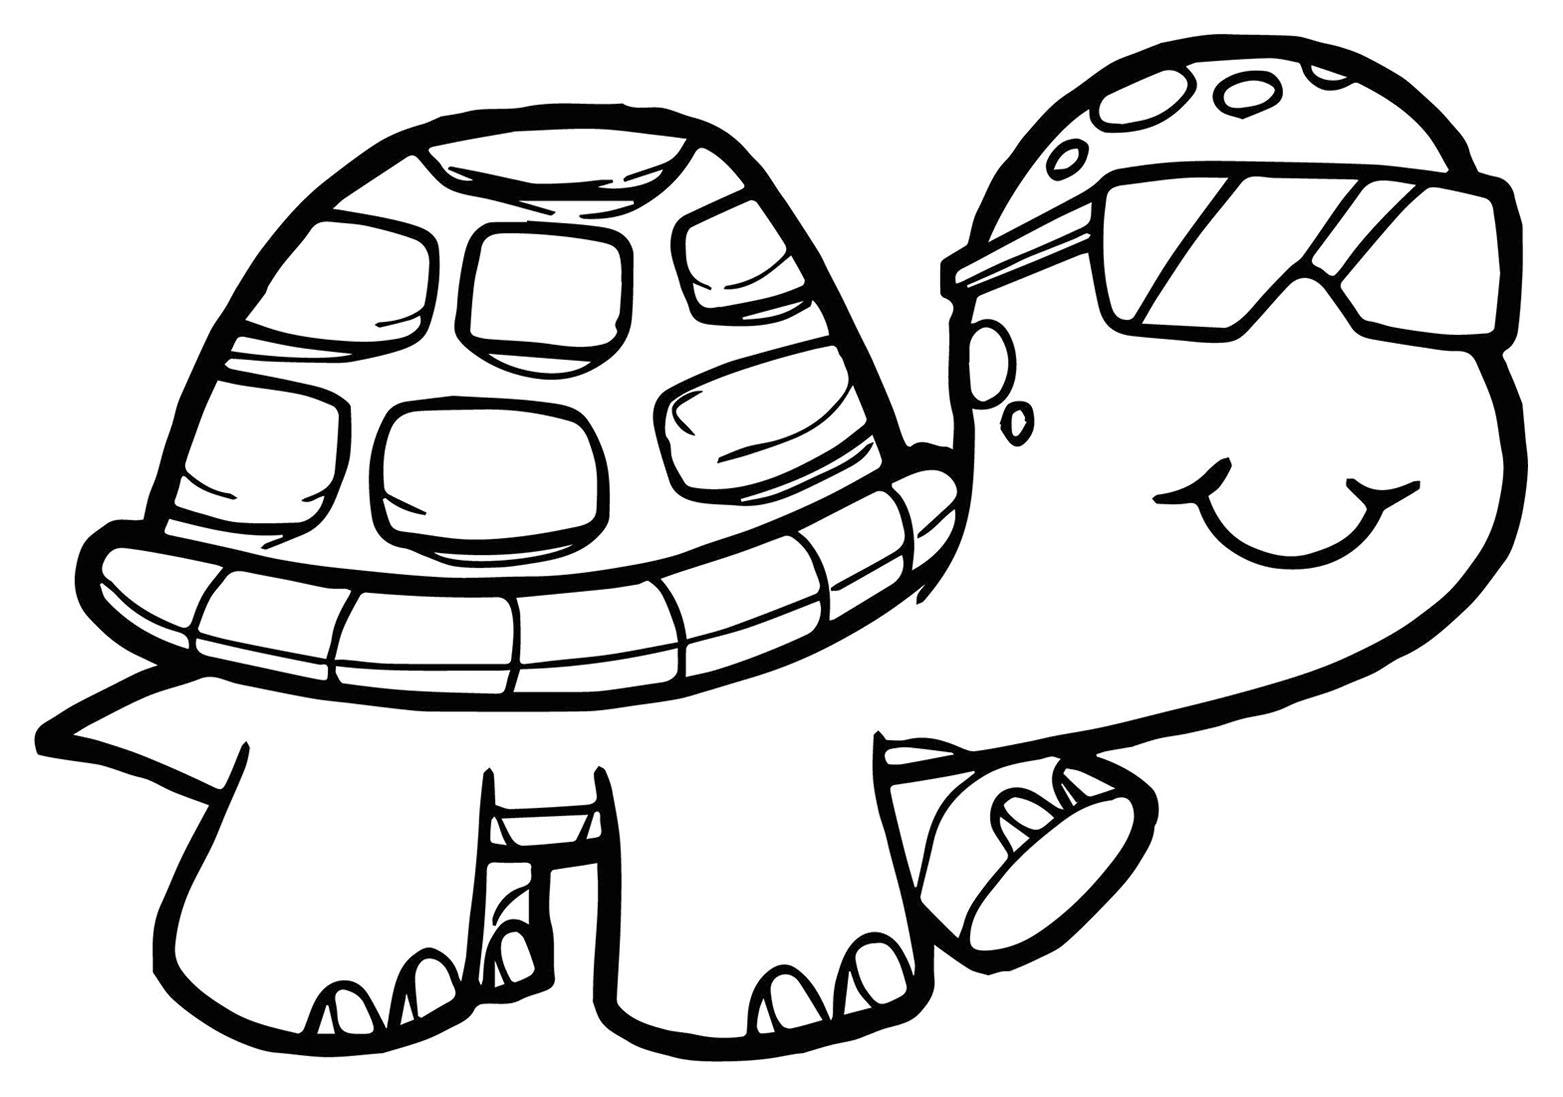 turtle coloring pictures turtles to color for kids turtles kids coloring pages turtle coloring pictures